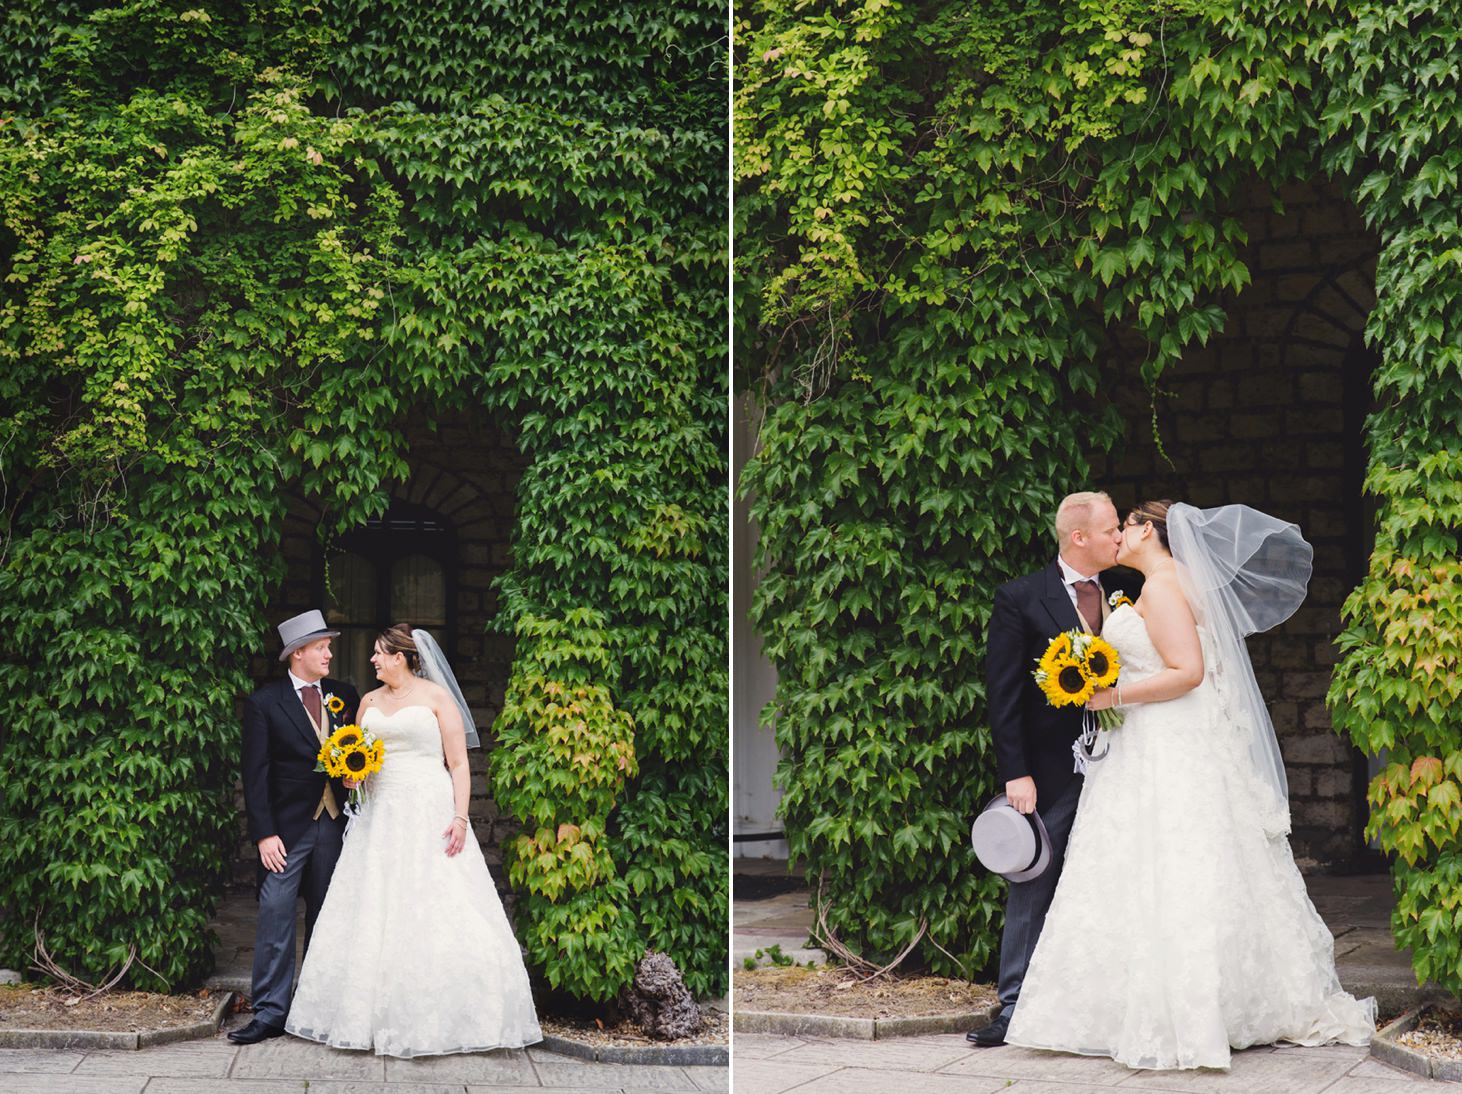 Wycombe Abbey wedding photography bride and groom portrait